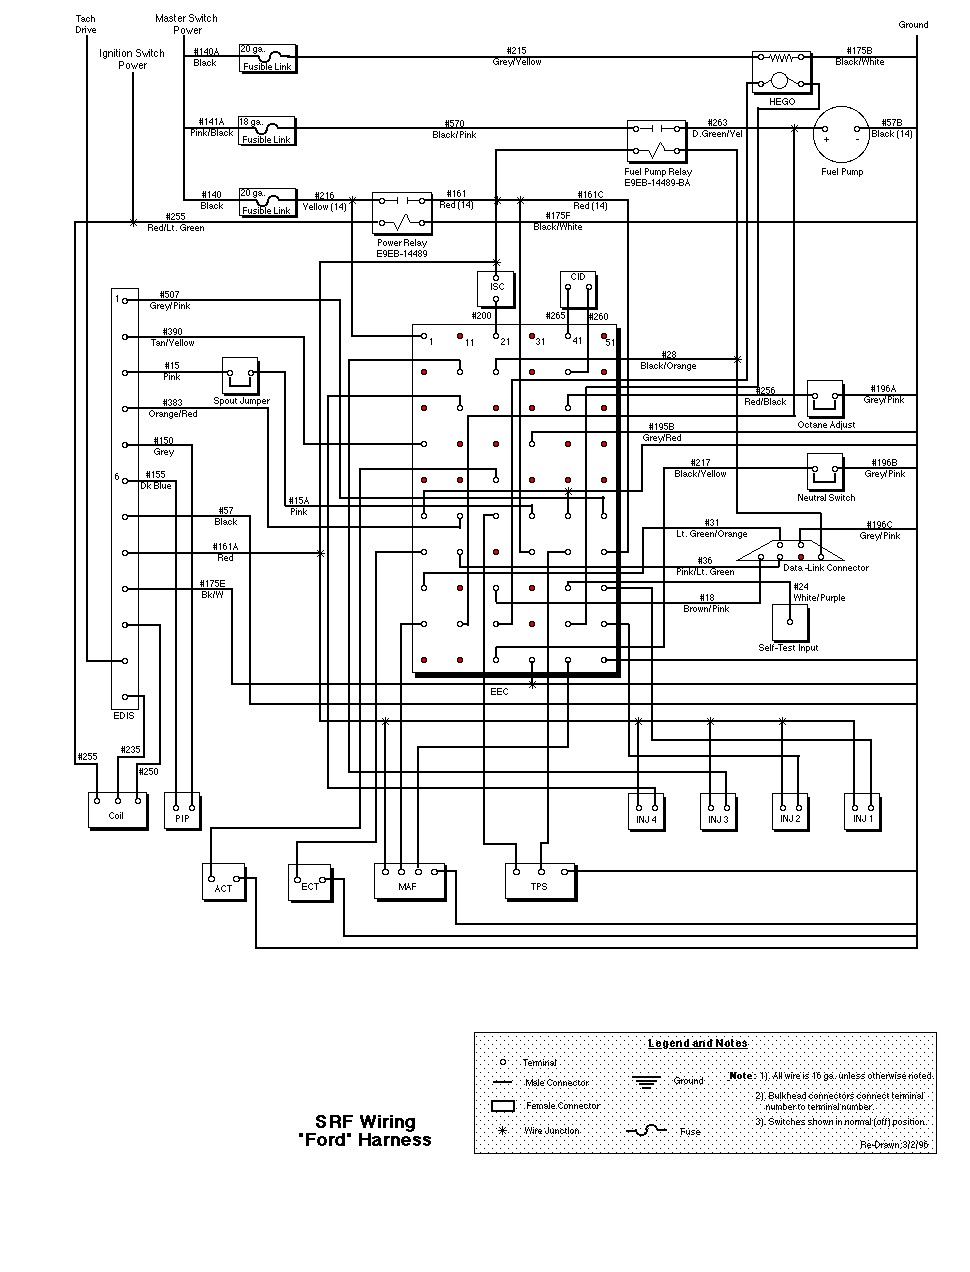 ZD_5908] Ford L8000 Wiring Schematic Free DiagramTacle Opein Cosa Boapu Mohammedshrine Librar Wiring 101